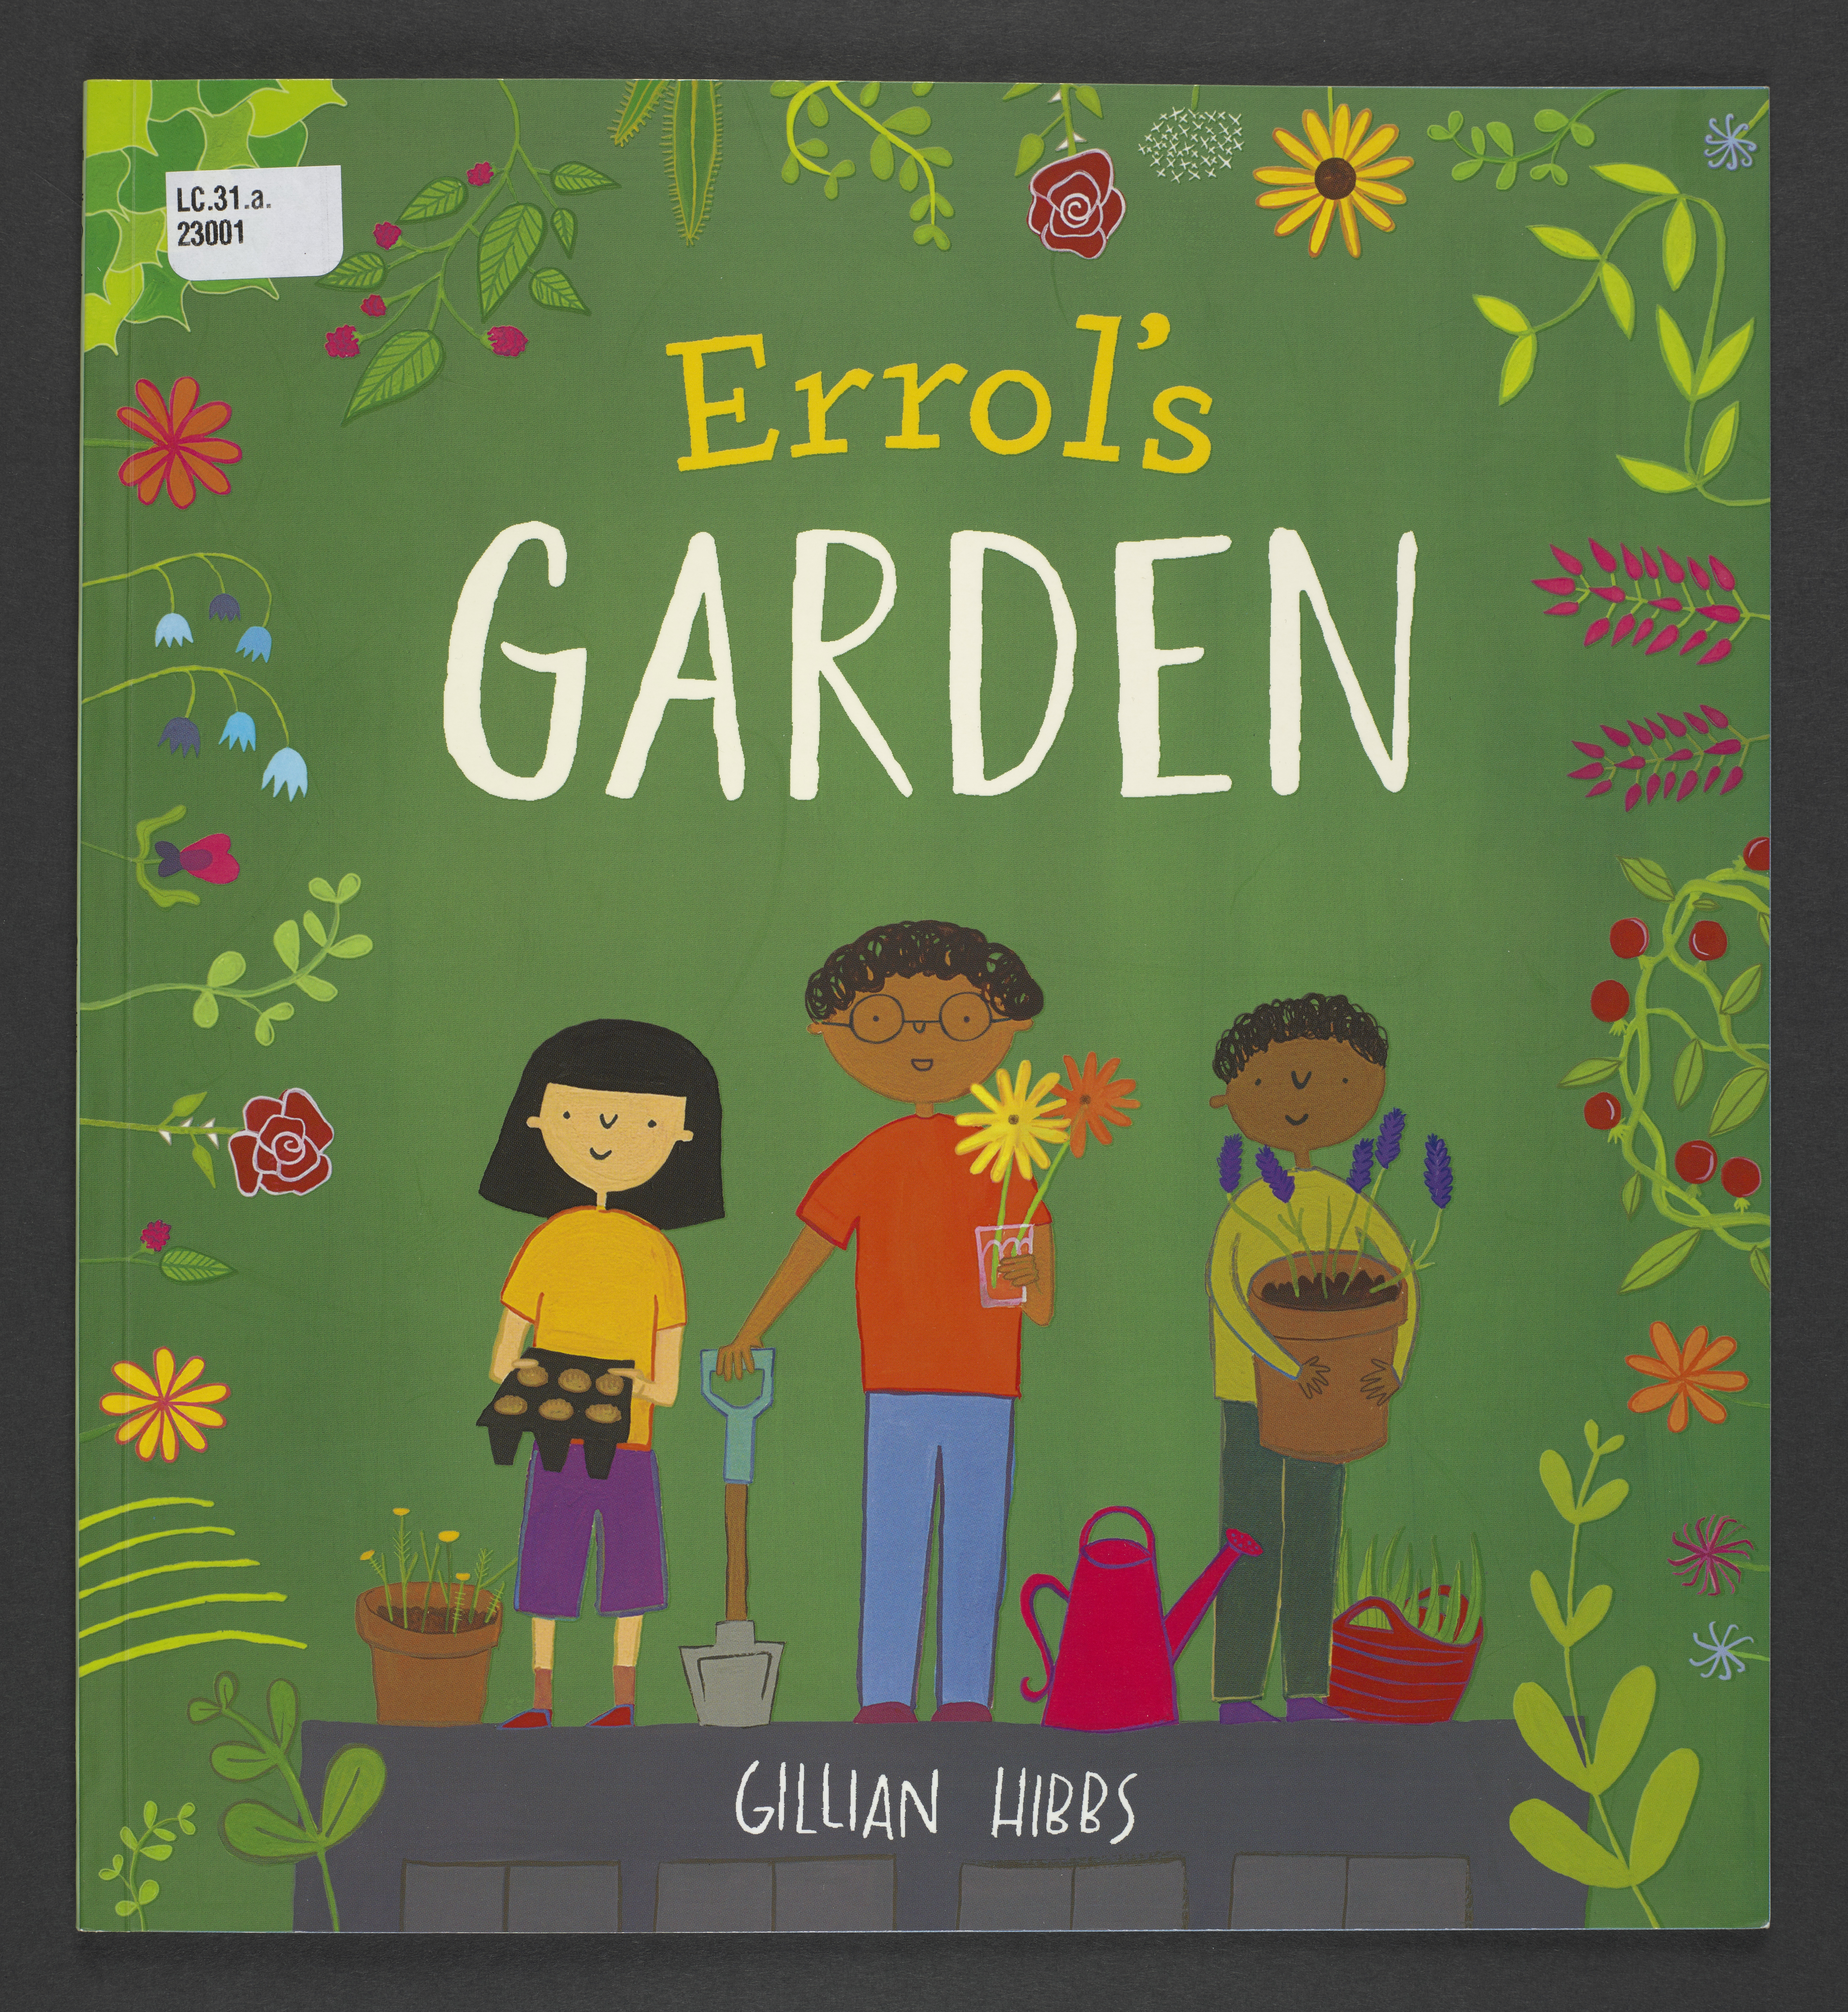 Front cover of the book with the title, and three children illustrated on the front. Around the edge are a variety of different plants and flowers.